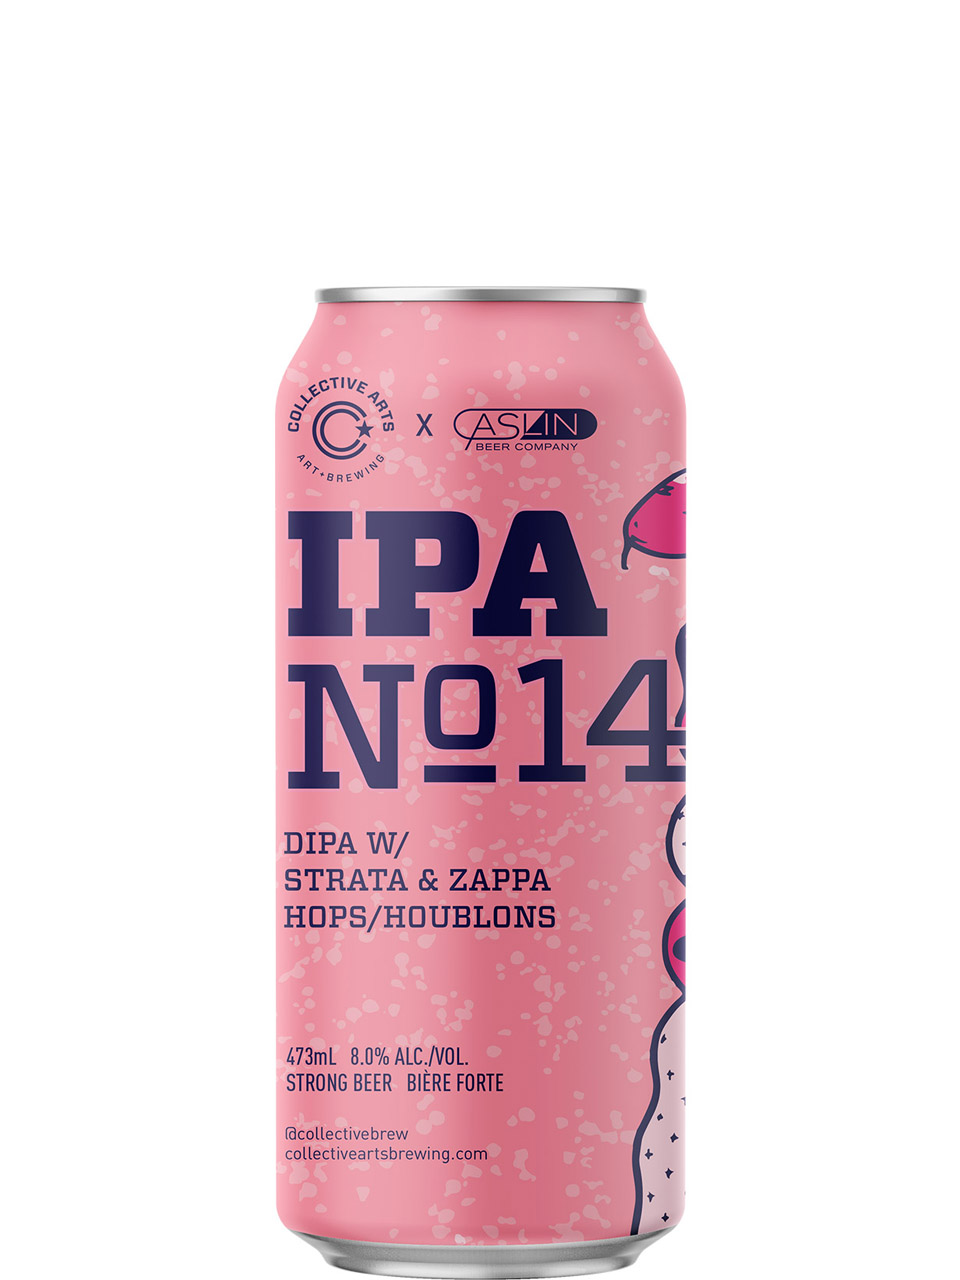 Collective Arts IPA No.14 DIPA Strata&Zappa 473ml